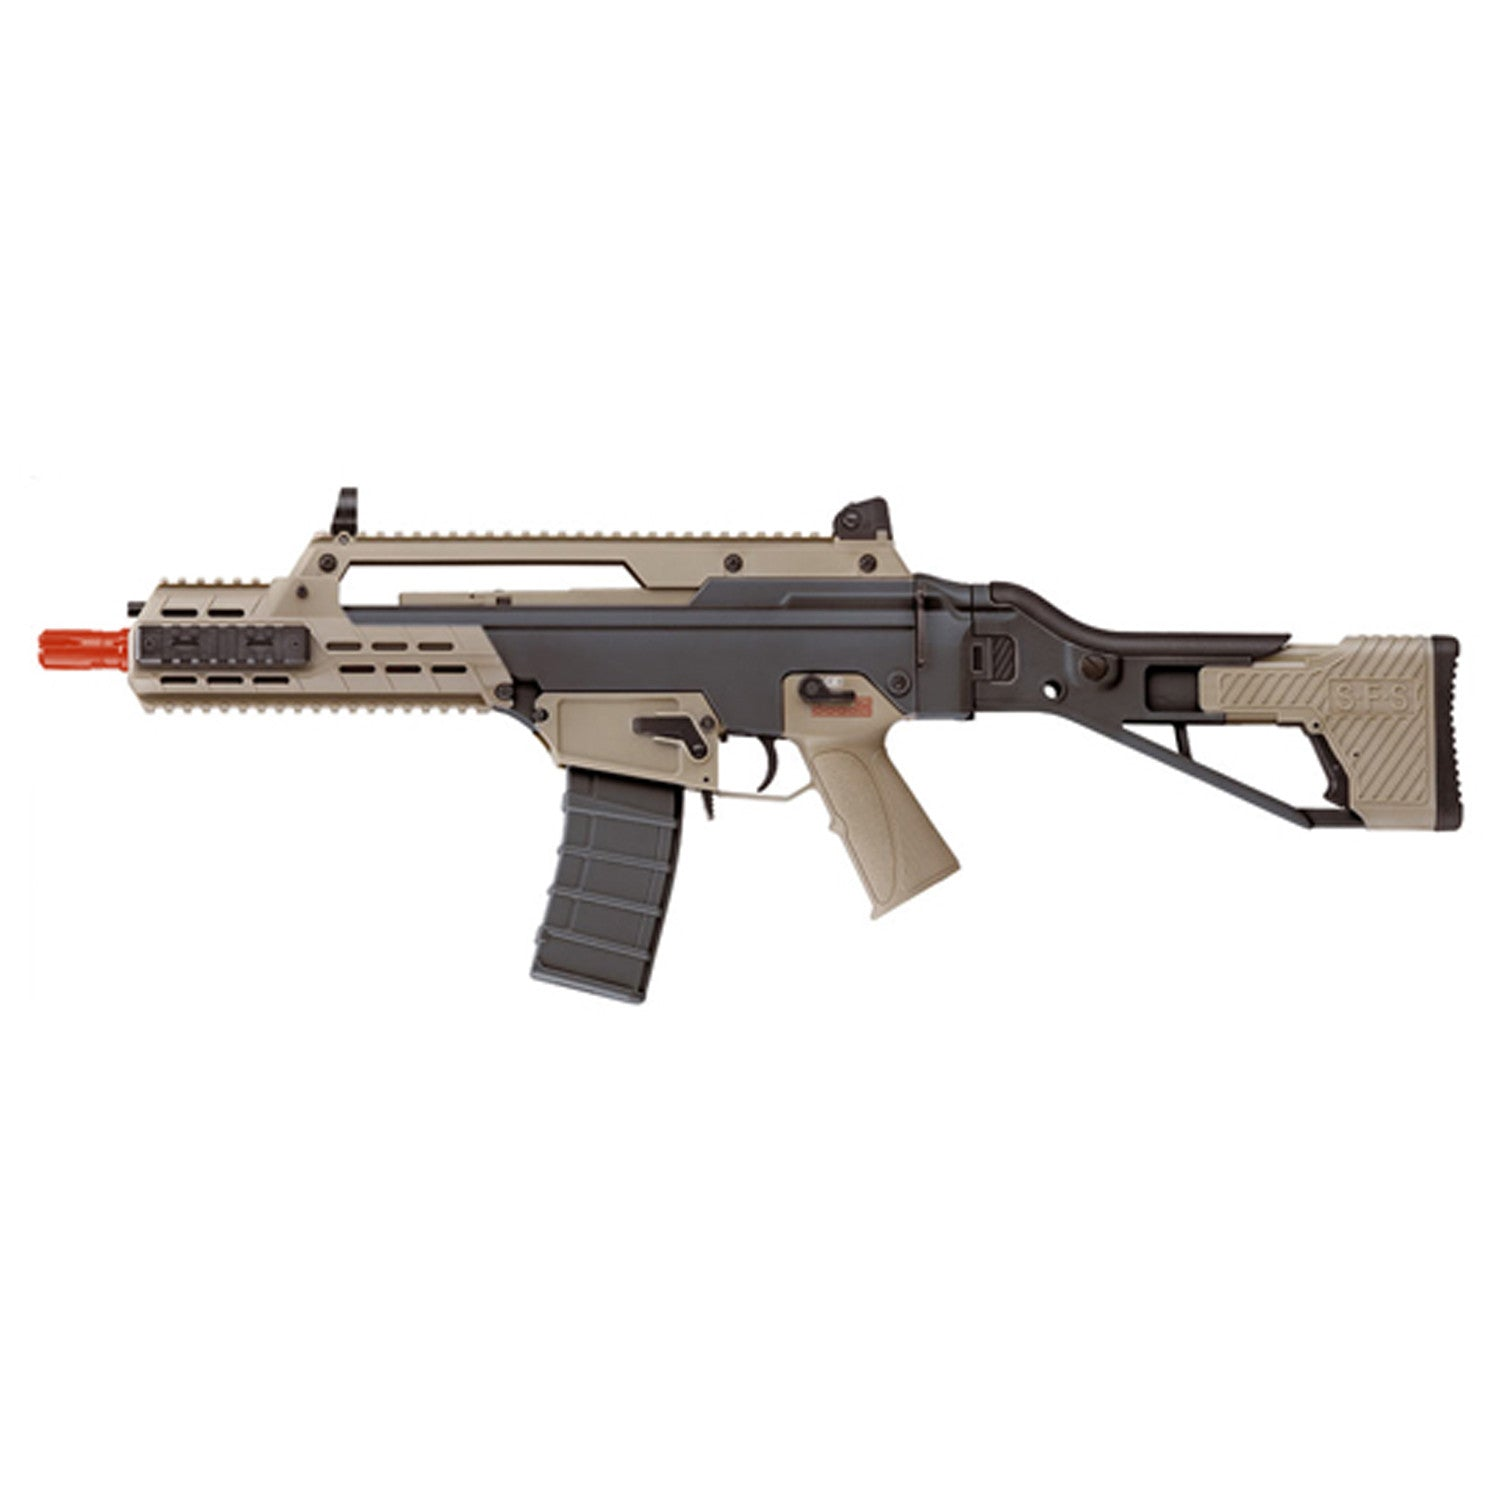 ICS G33 Compact Assault Rifle Two Tone (Black and Tan) - -- Semi & Fully Automatic Shooting mode -- Metal & Standard Industrial Plastic Construction -- 370rds Hi-Cap C7 Magazine accommodate -- Full metal front & adjustable rear sight -- Nylon Fiber Side Folding SFS Stock (4 Position Extended Length / 3 Position Cheek Height ) -- 210mm G36 Tactical Handguard (Picatinny rail on Top and Bottom) With 2X 95mm Side Rail On Both -- Ergonomics texture Pistol Grip